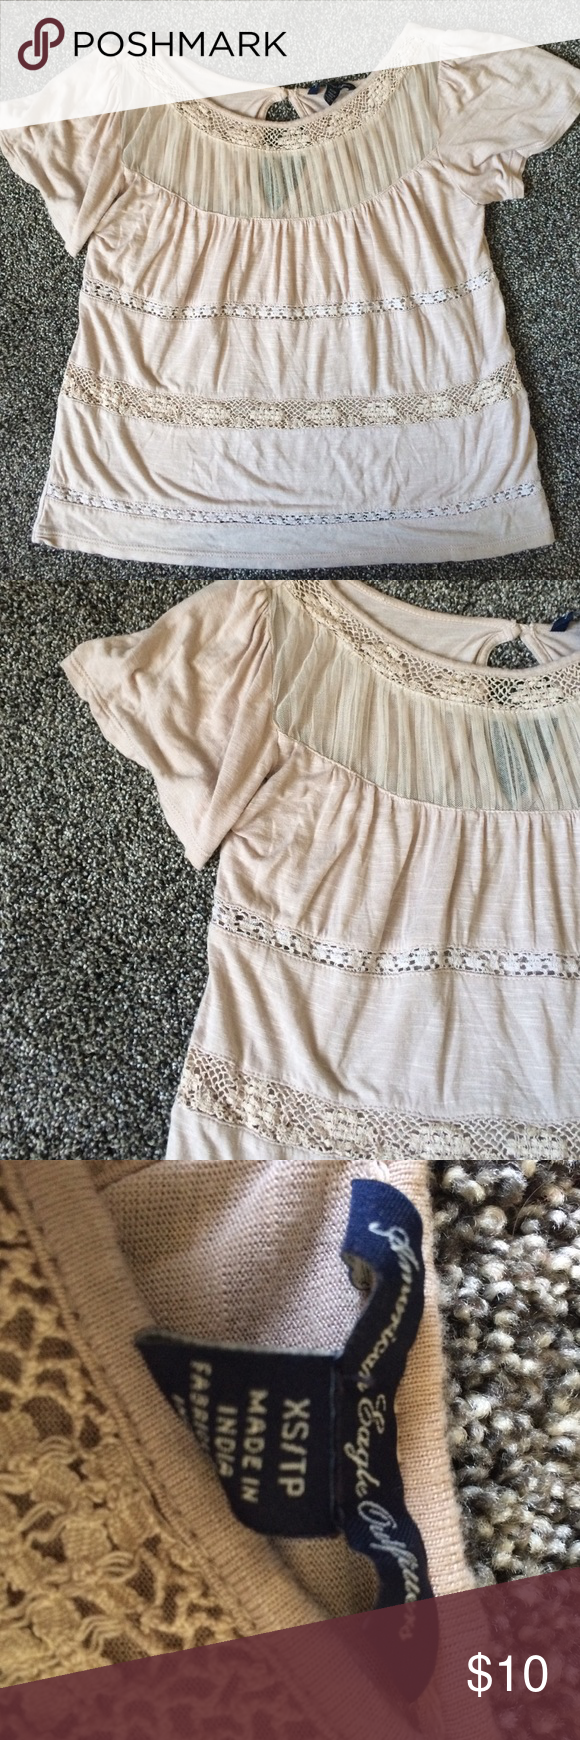 🍂 American Eagle Fall Top 🍂 Super cute lace fall top from American Eagle. No damage. Size XS. Cutout on the back (pic 4). Save with bundling! American Eagle Outfitters Tops